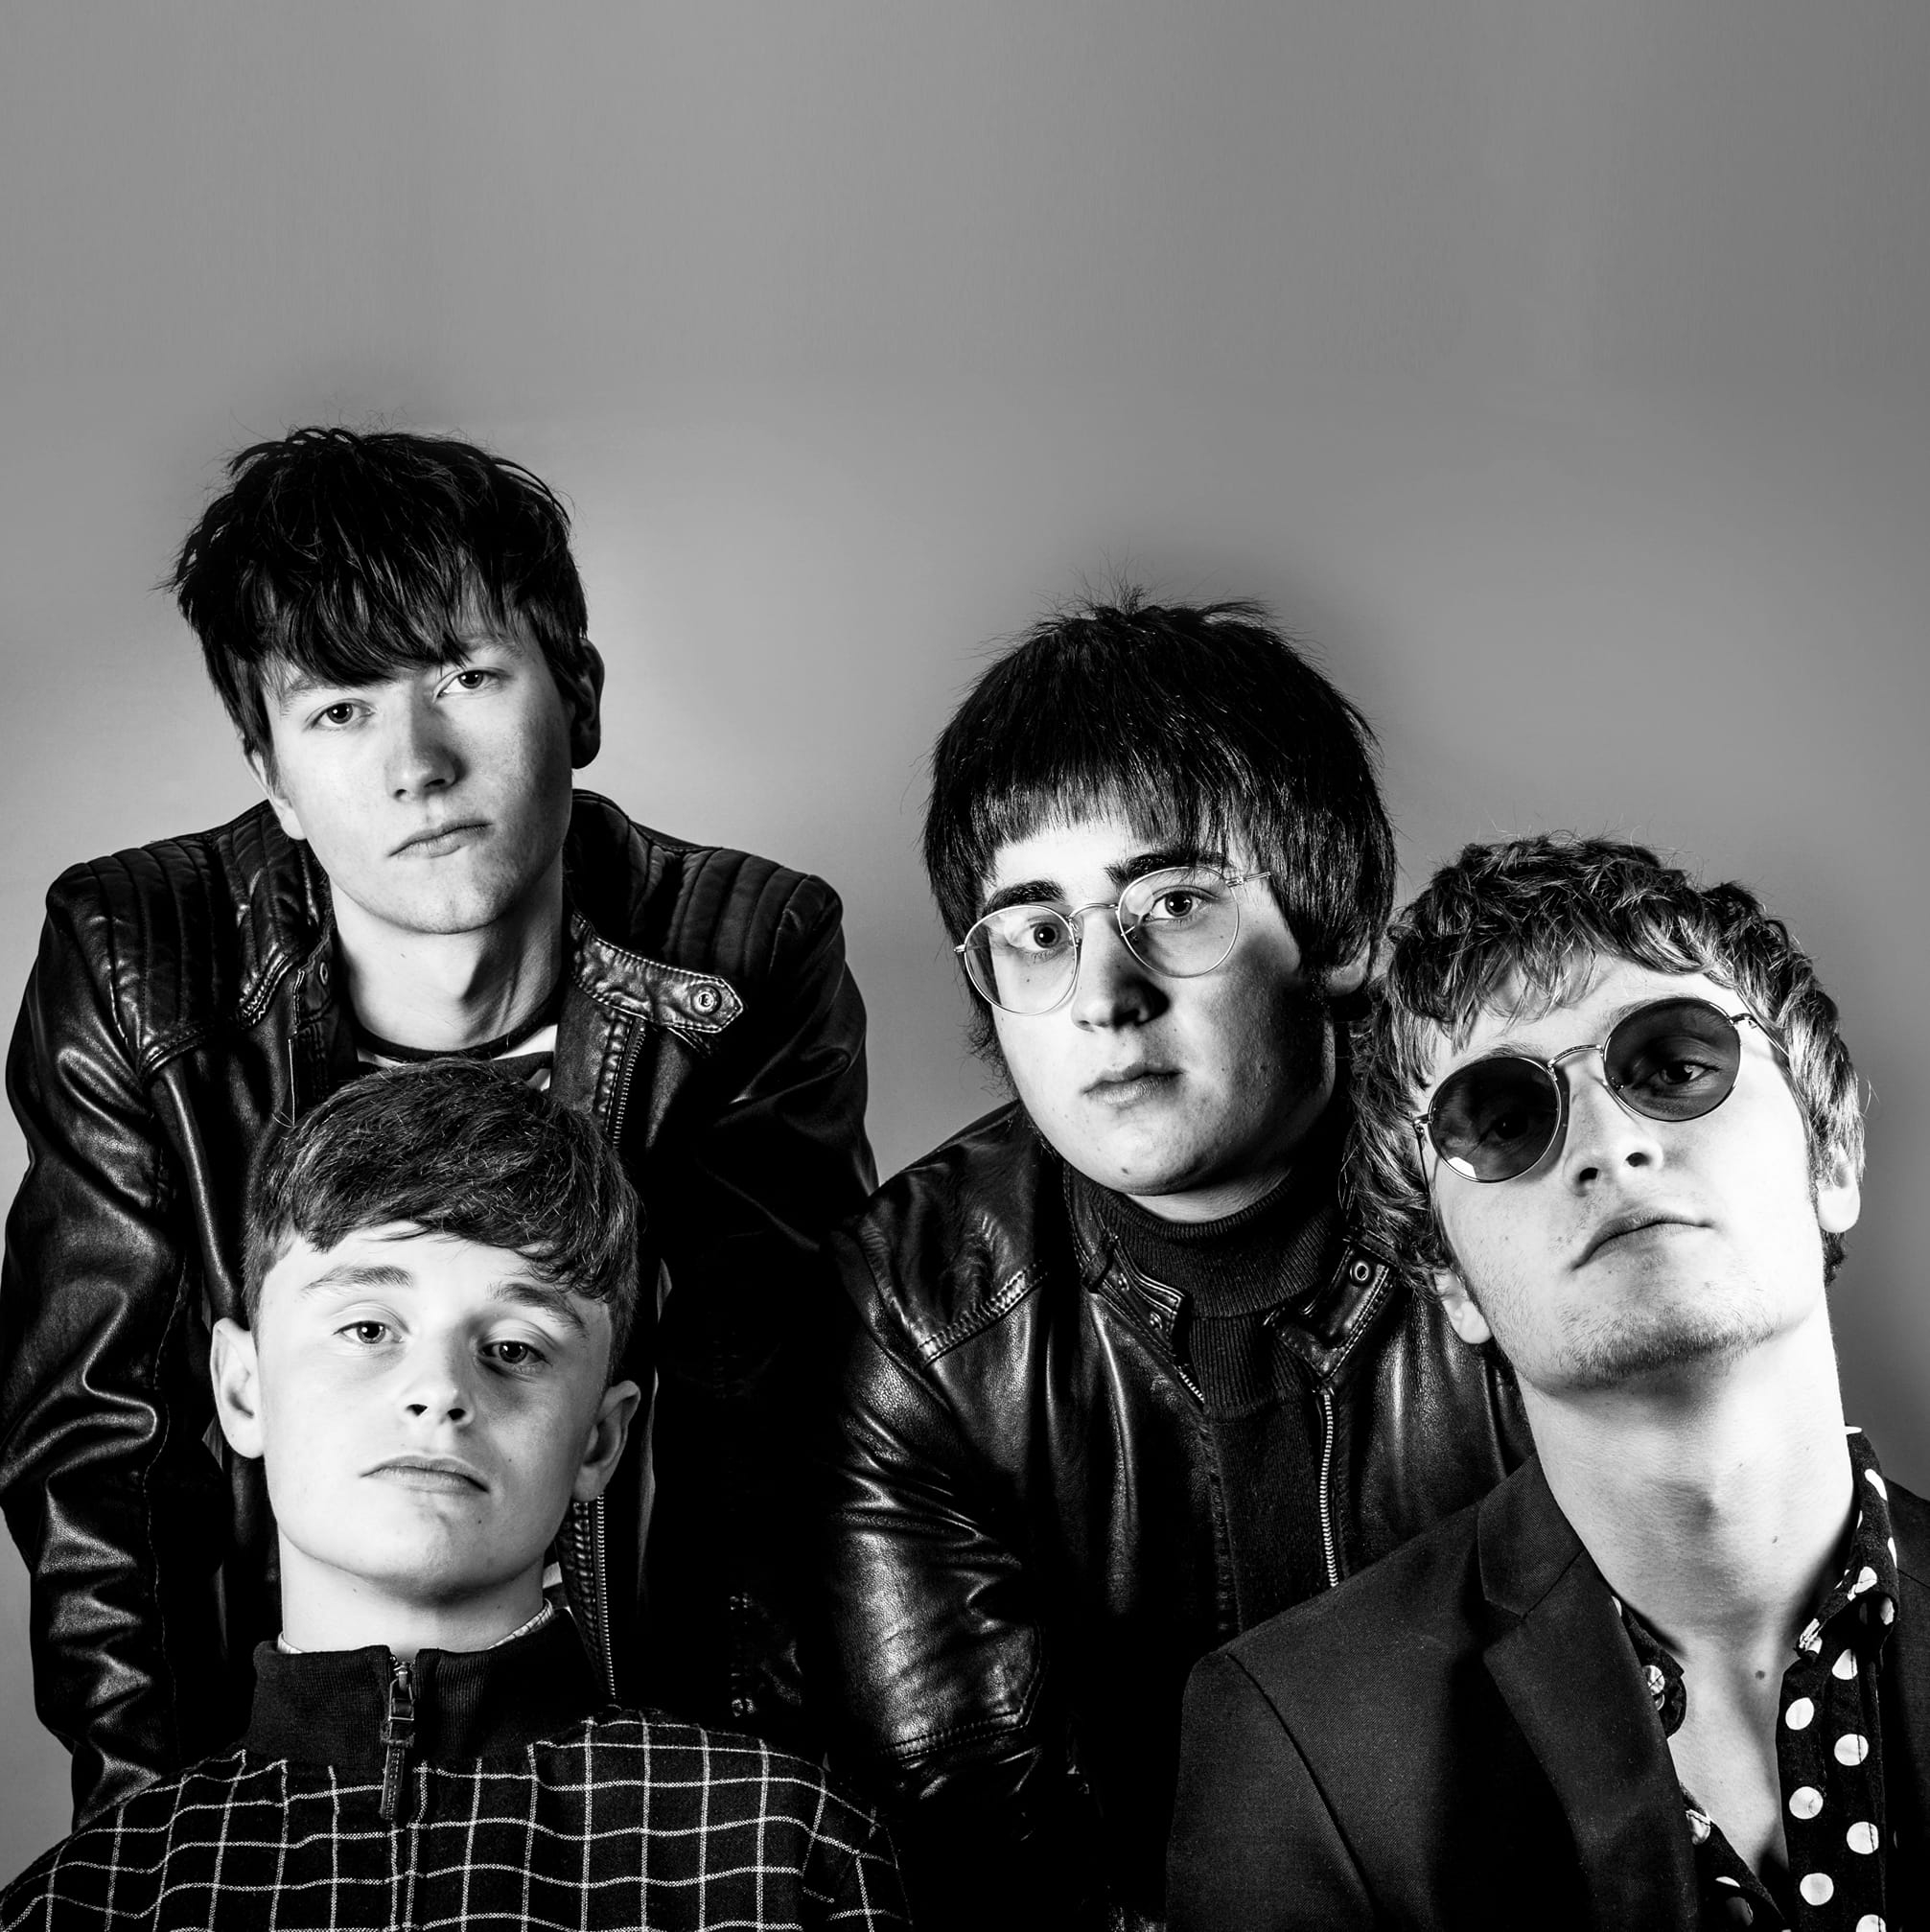 INTRODUCING THE BAND [18]: THE LAPELS